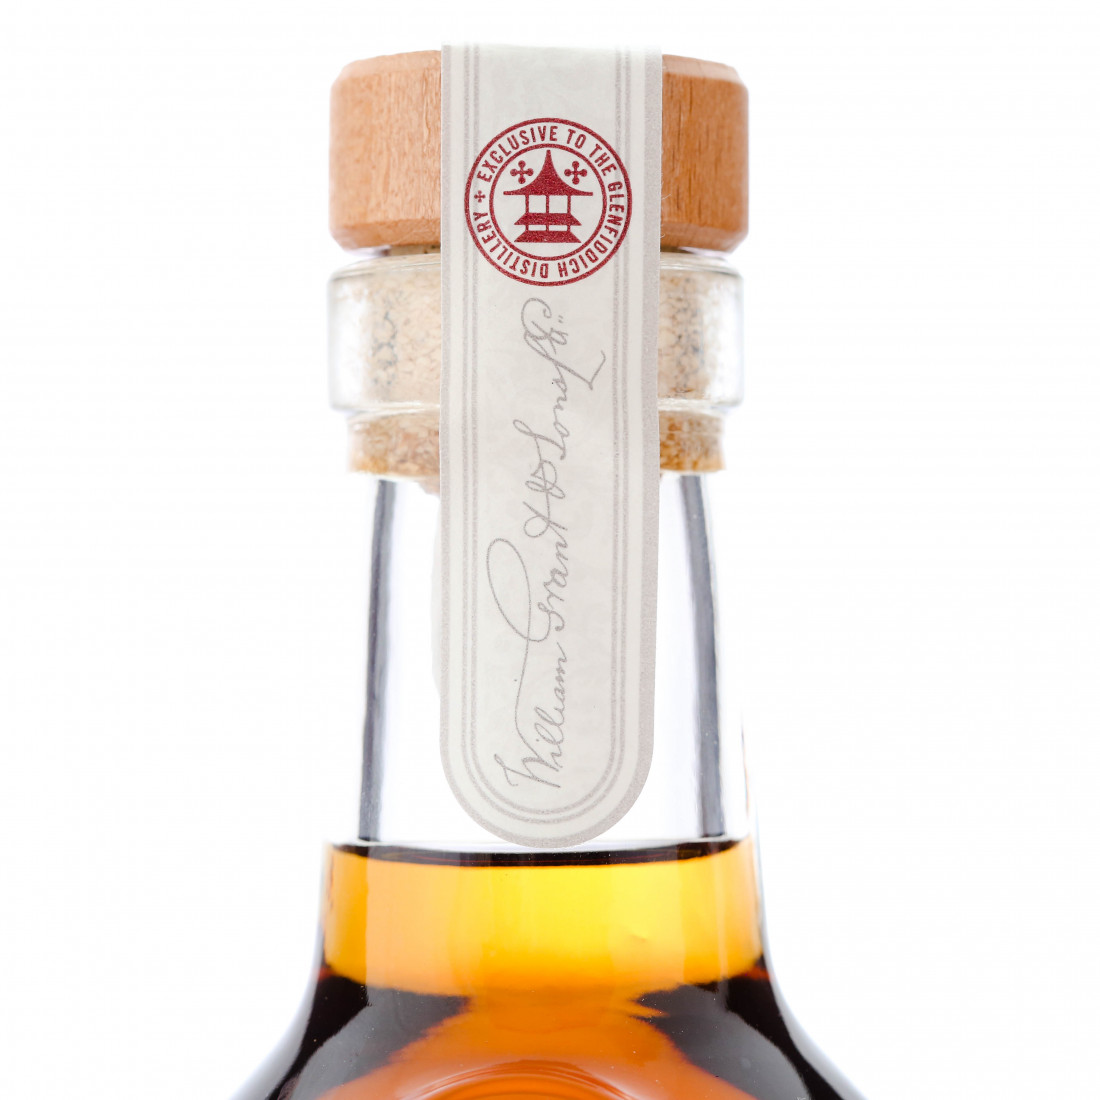 Glenfiddich Spirit of Speyside Distillery Edition 2020 / Bottle #001